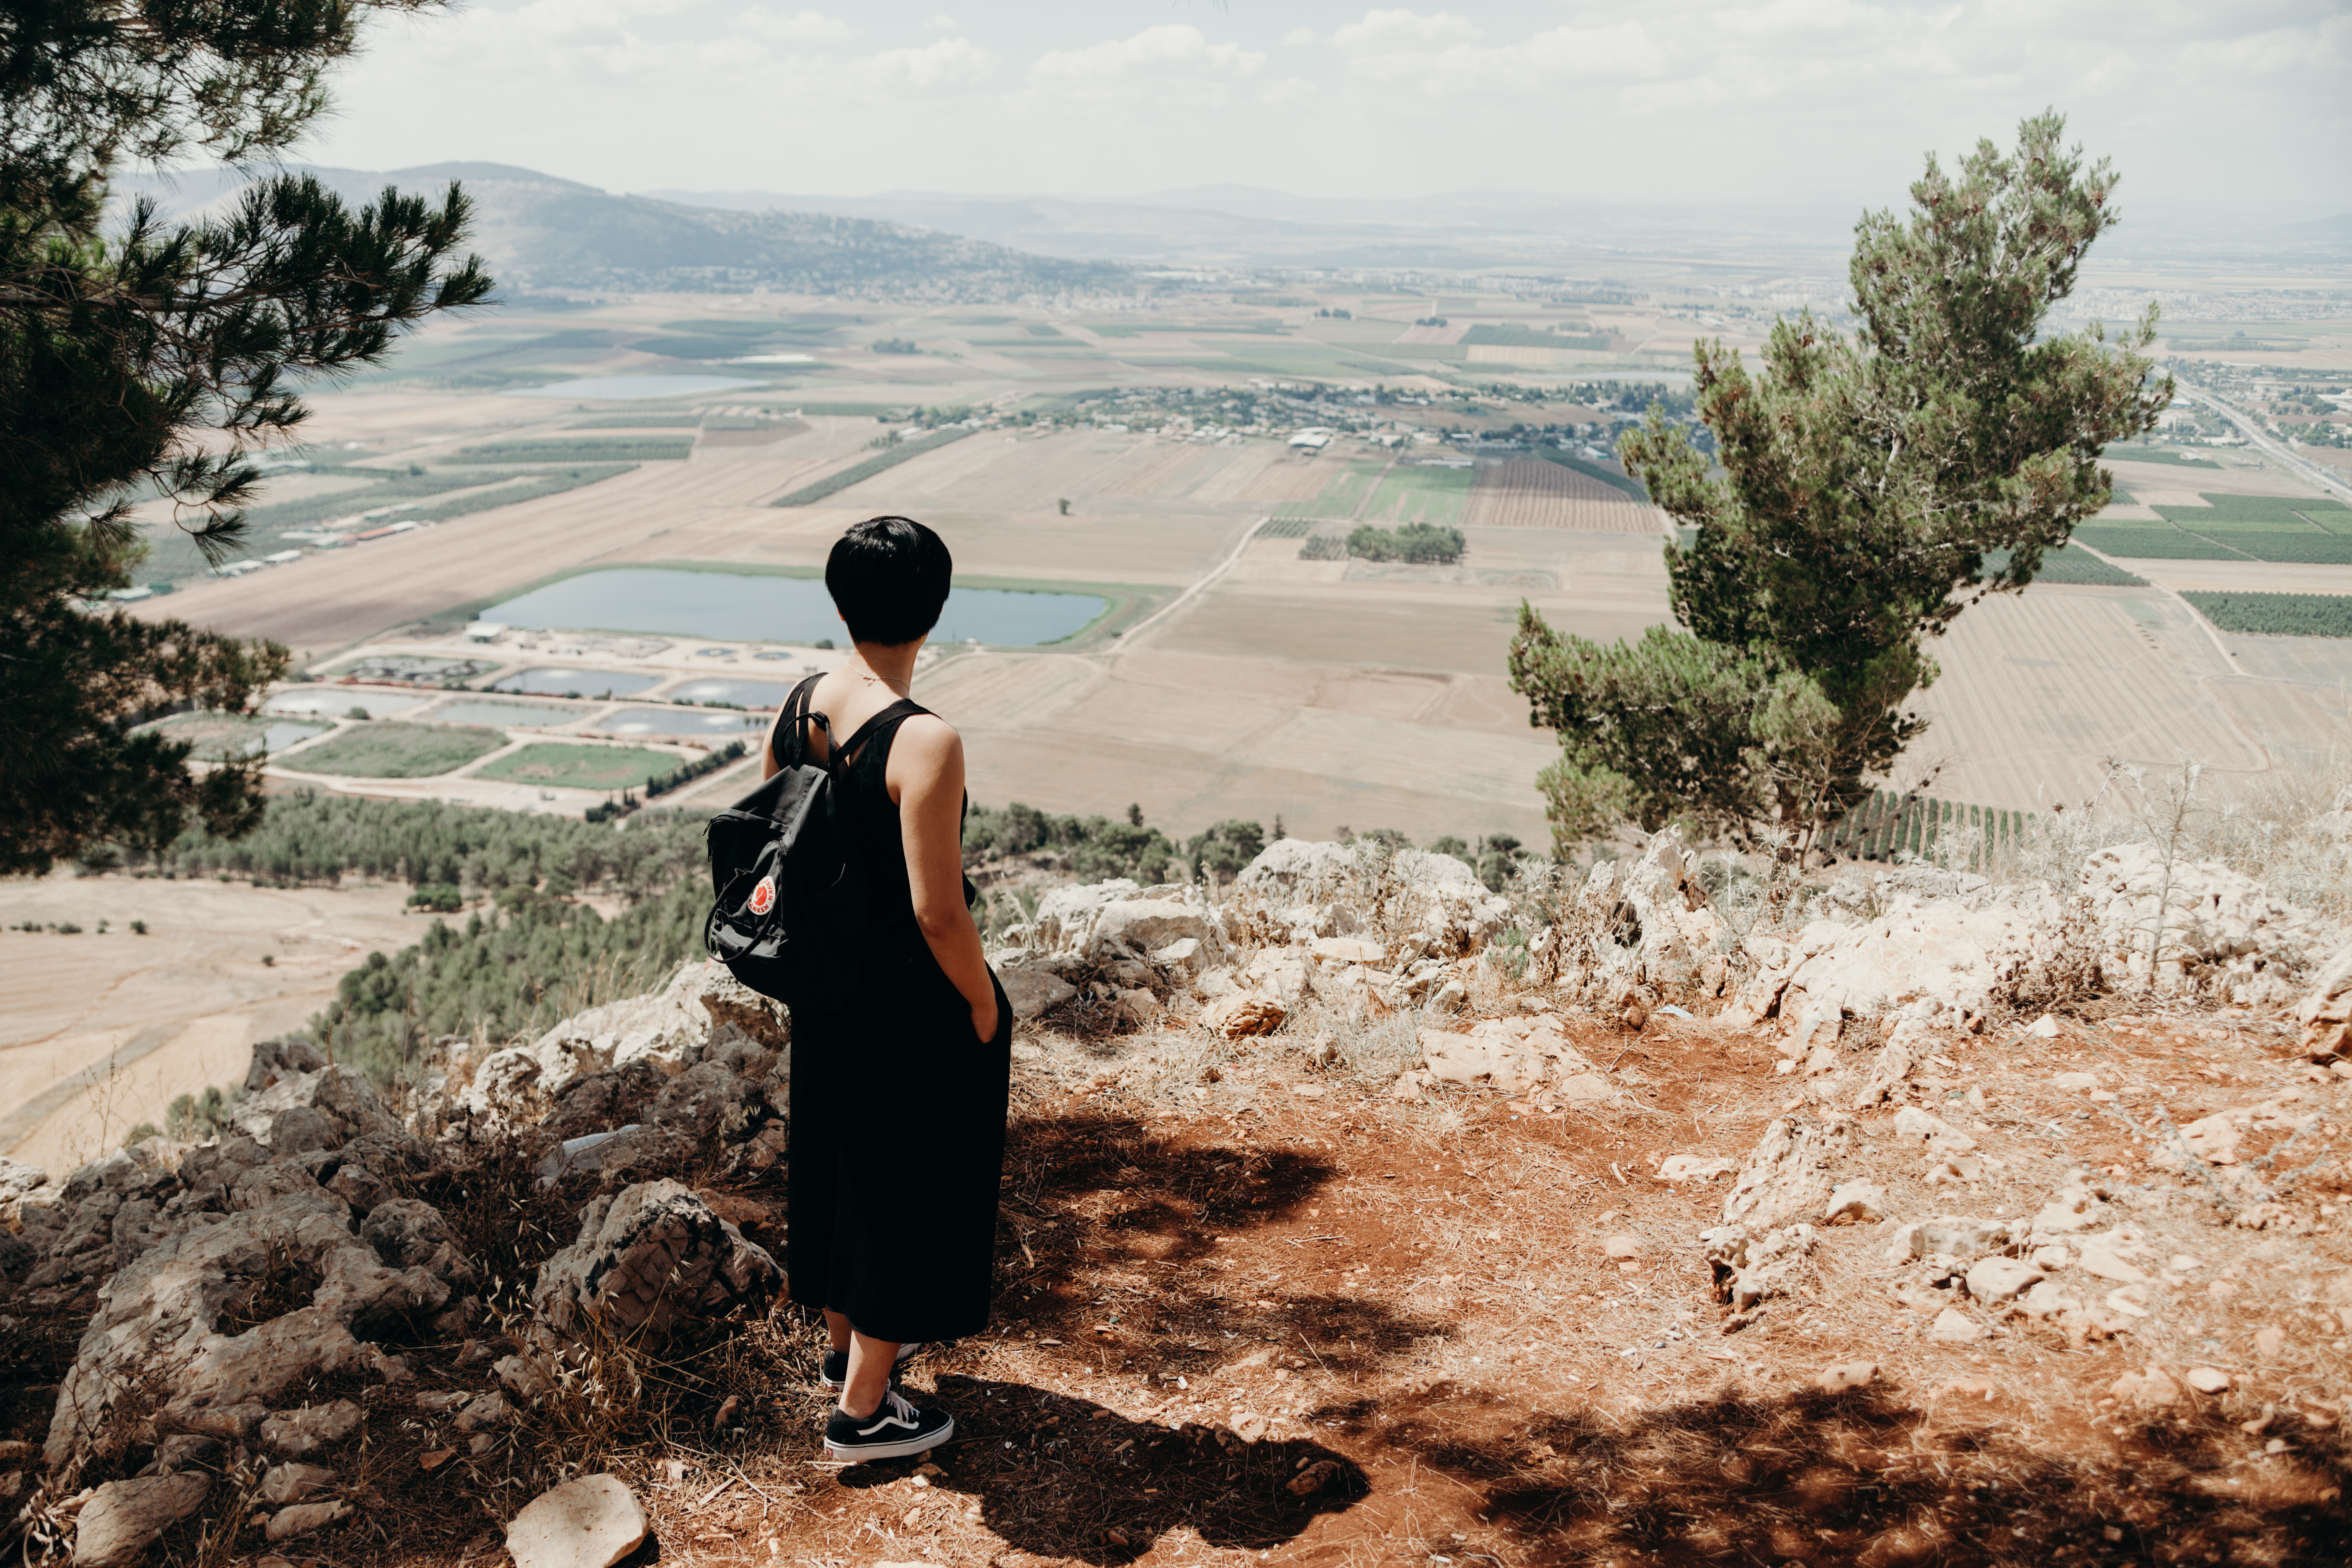 I left a piece of my heart in Israel - the root of my faith. A place where I walked in the footsteps of my Savior and tasted His love. He is who He says He is. He is coming back again. What hope.